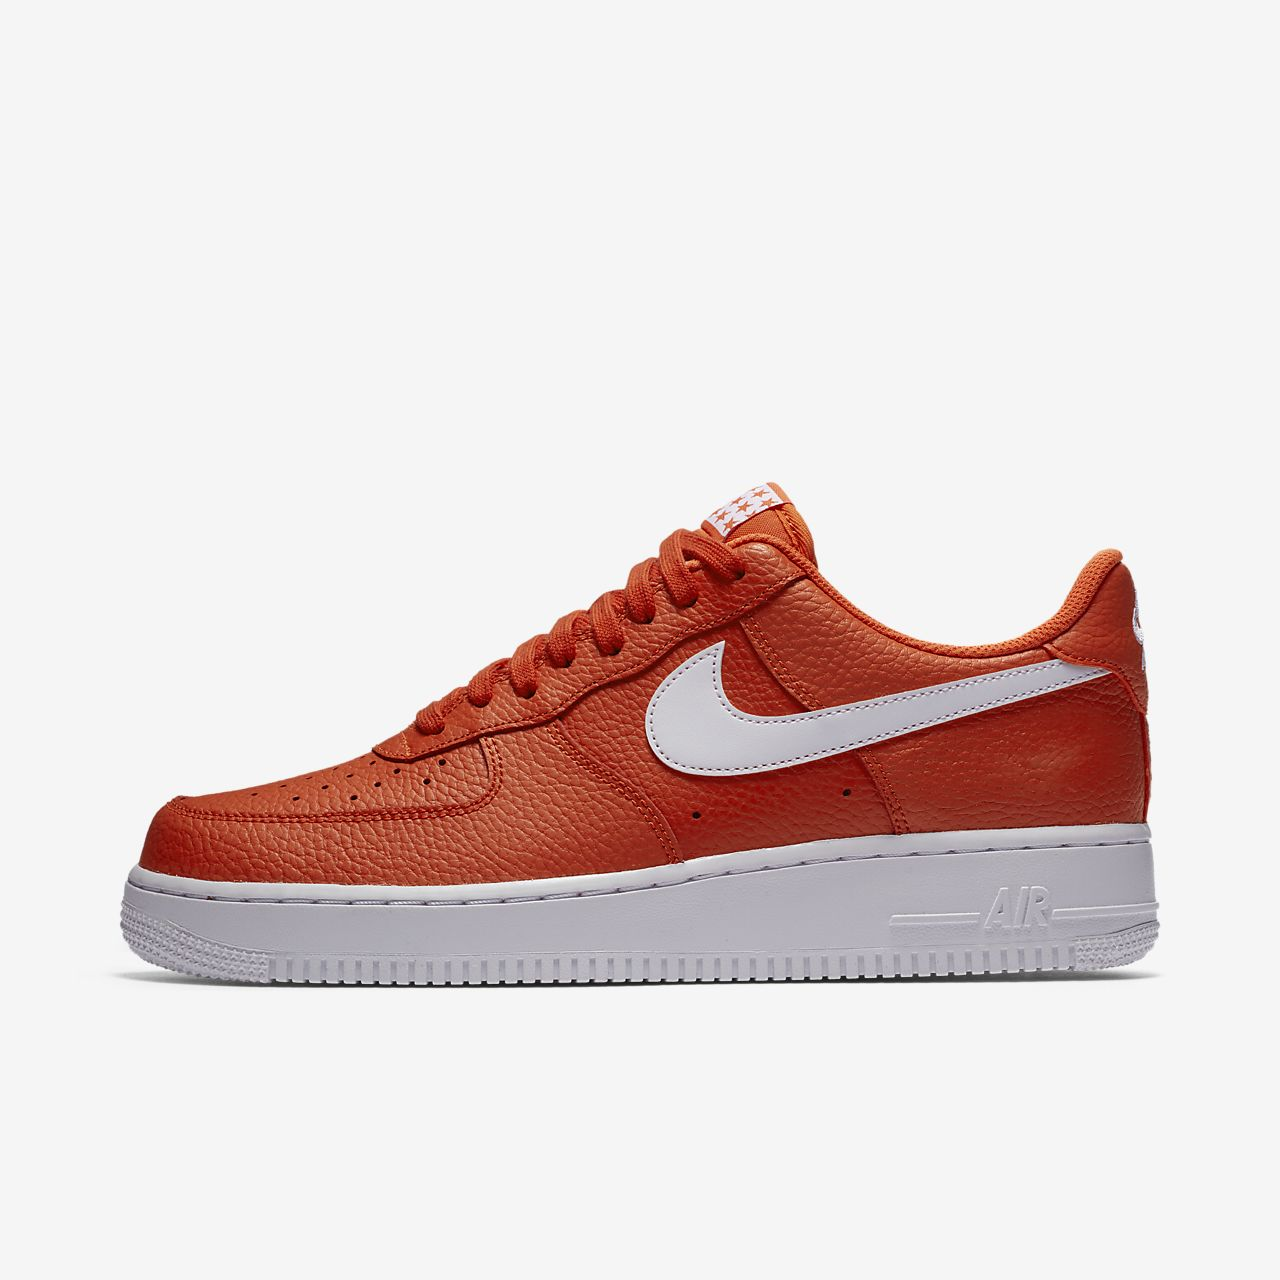 nike air force 1 low 07 lv8 nz